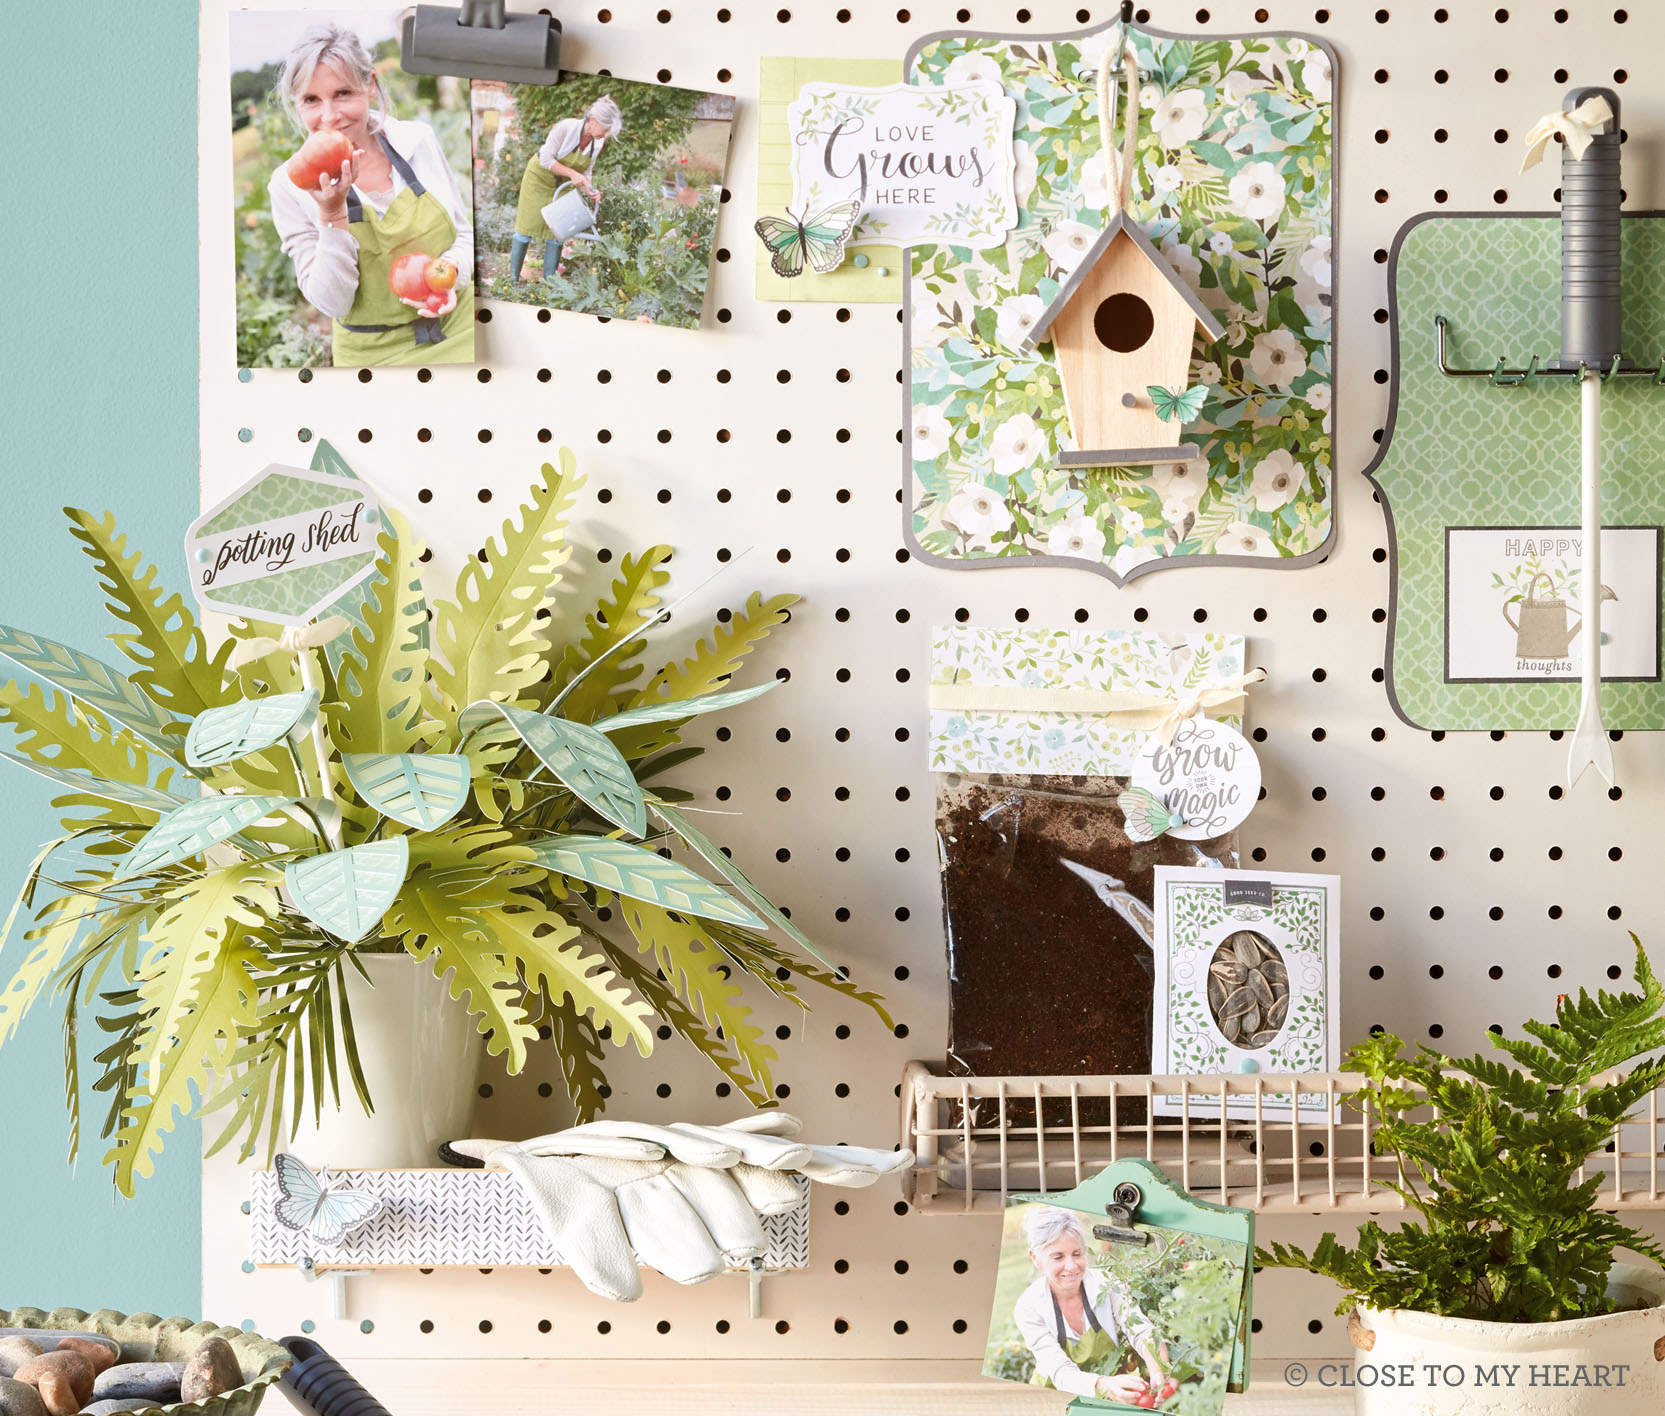 CTMH SEASONAL EXPRESSIONS 1 CATALOG - It's full of wonderul NEW products and ideas!